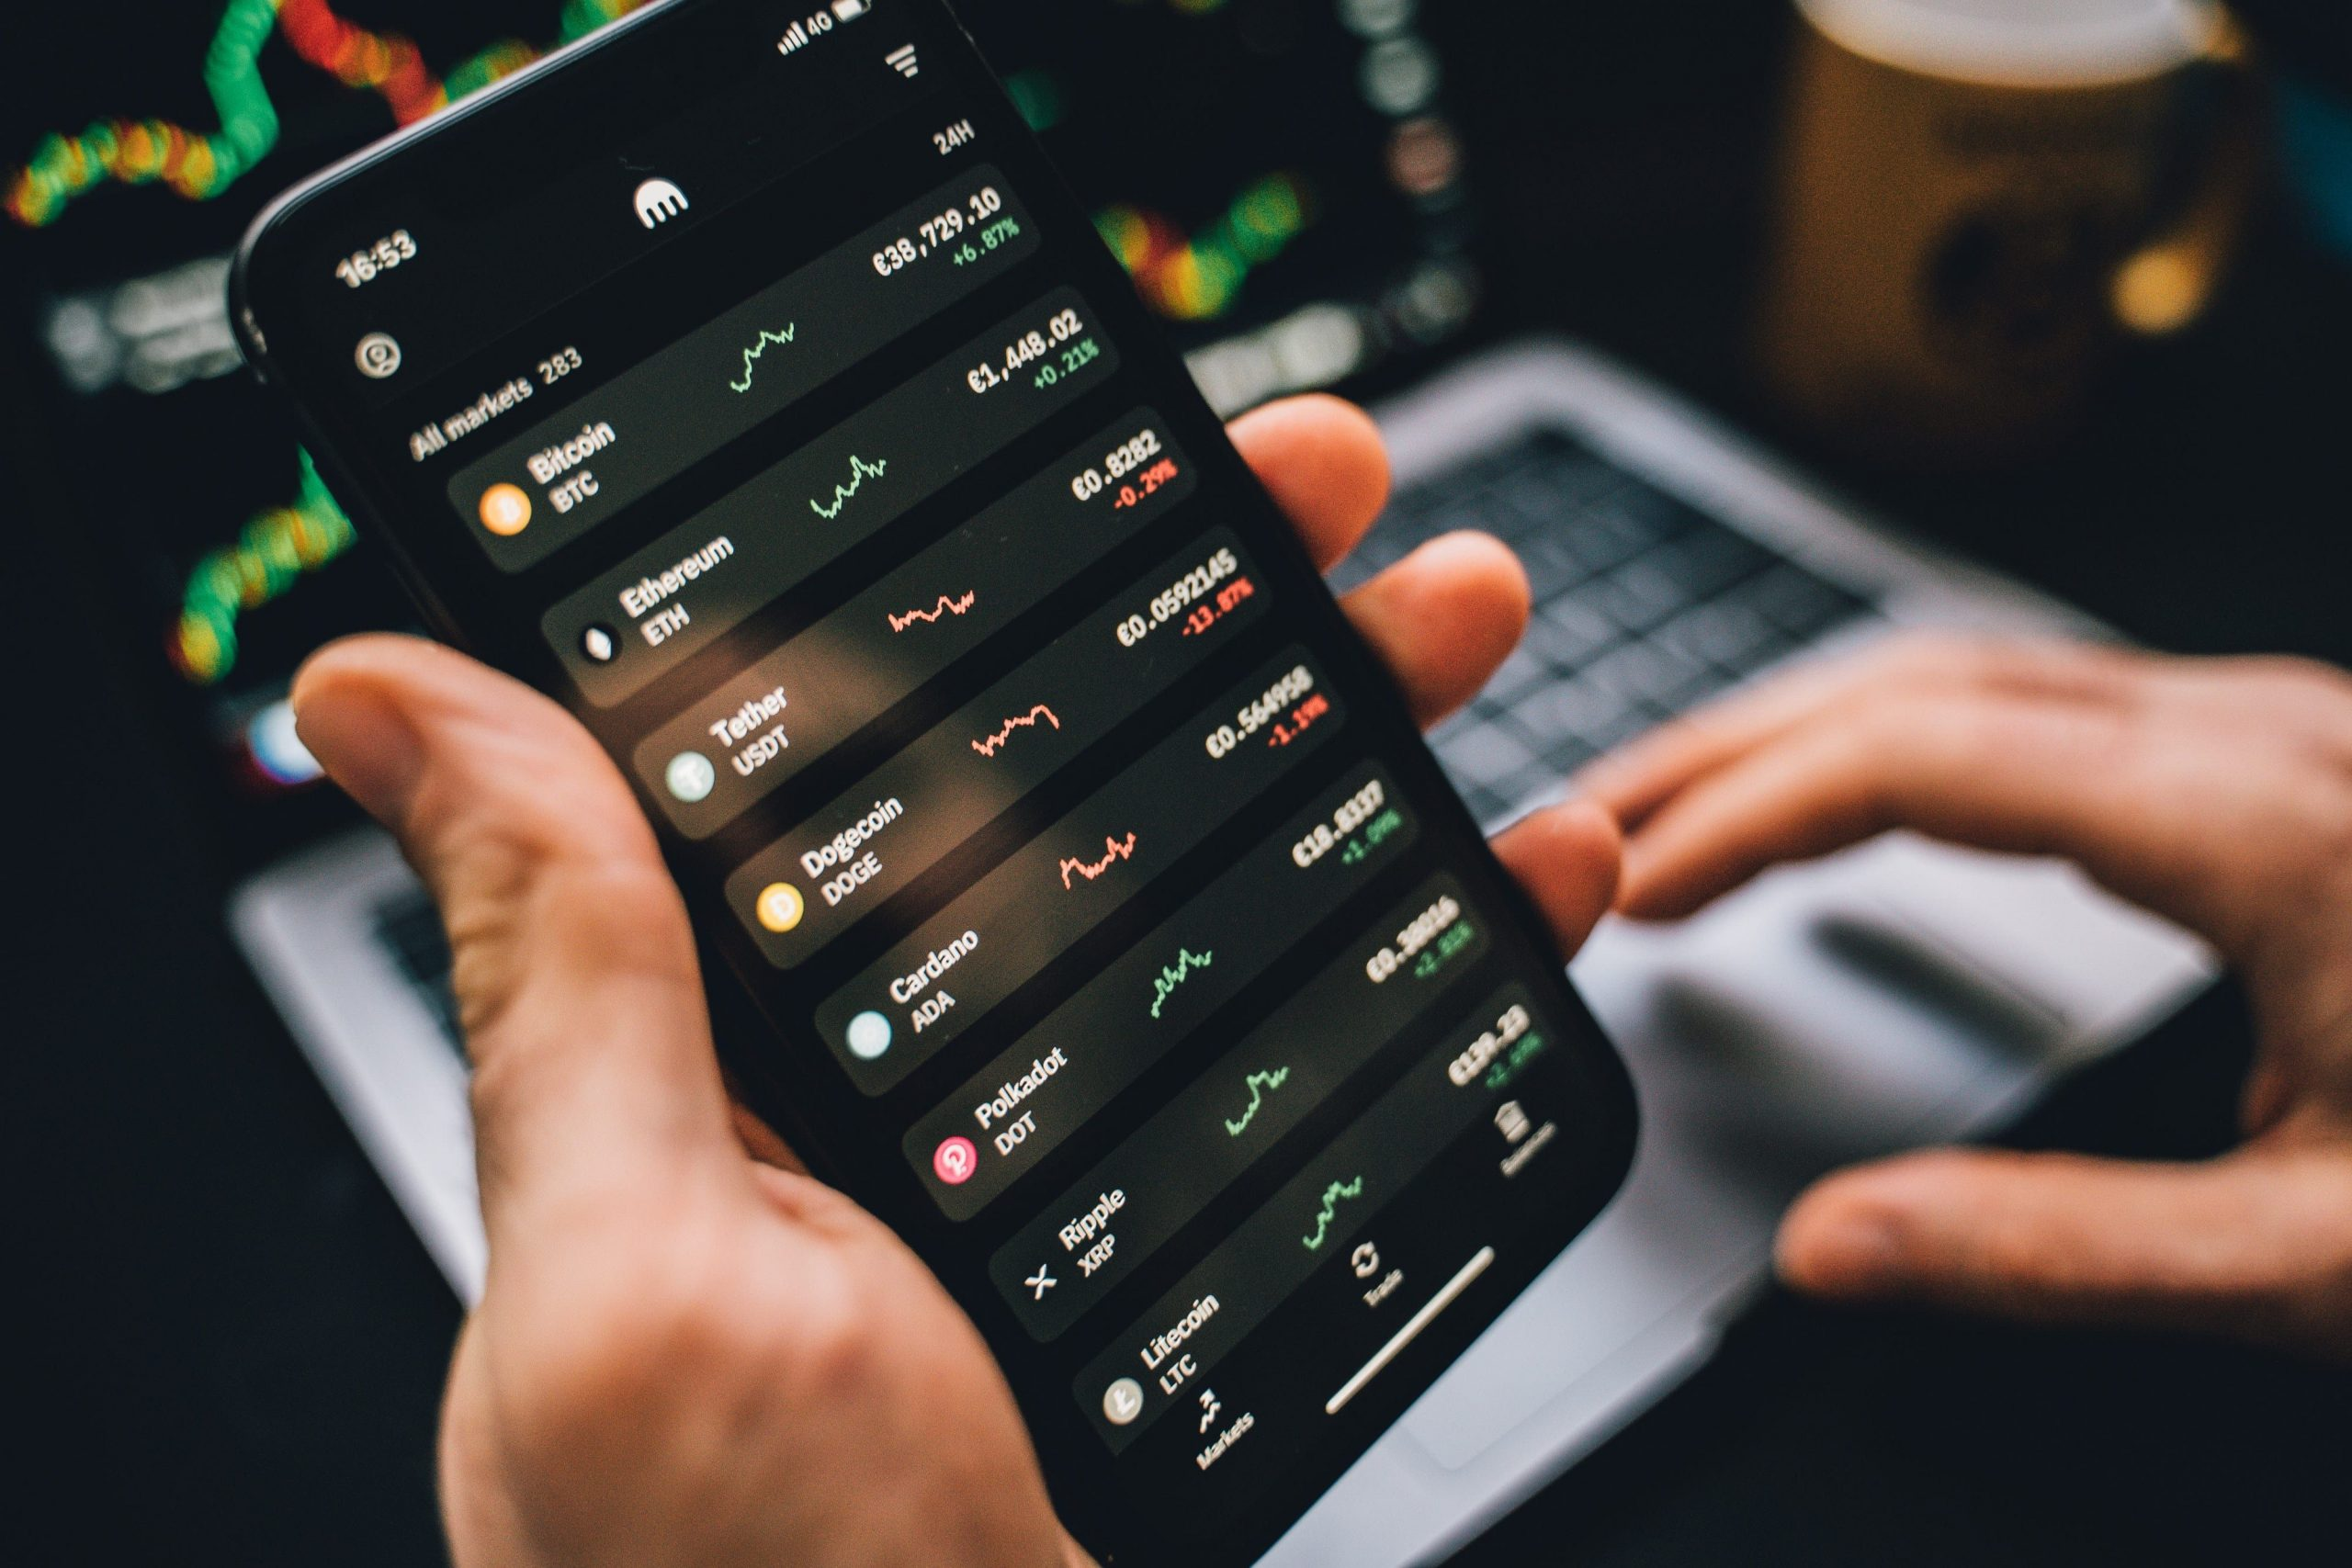 Top 5 Apps for Trading Cryptocurrency In 2021